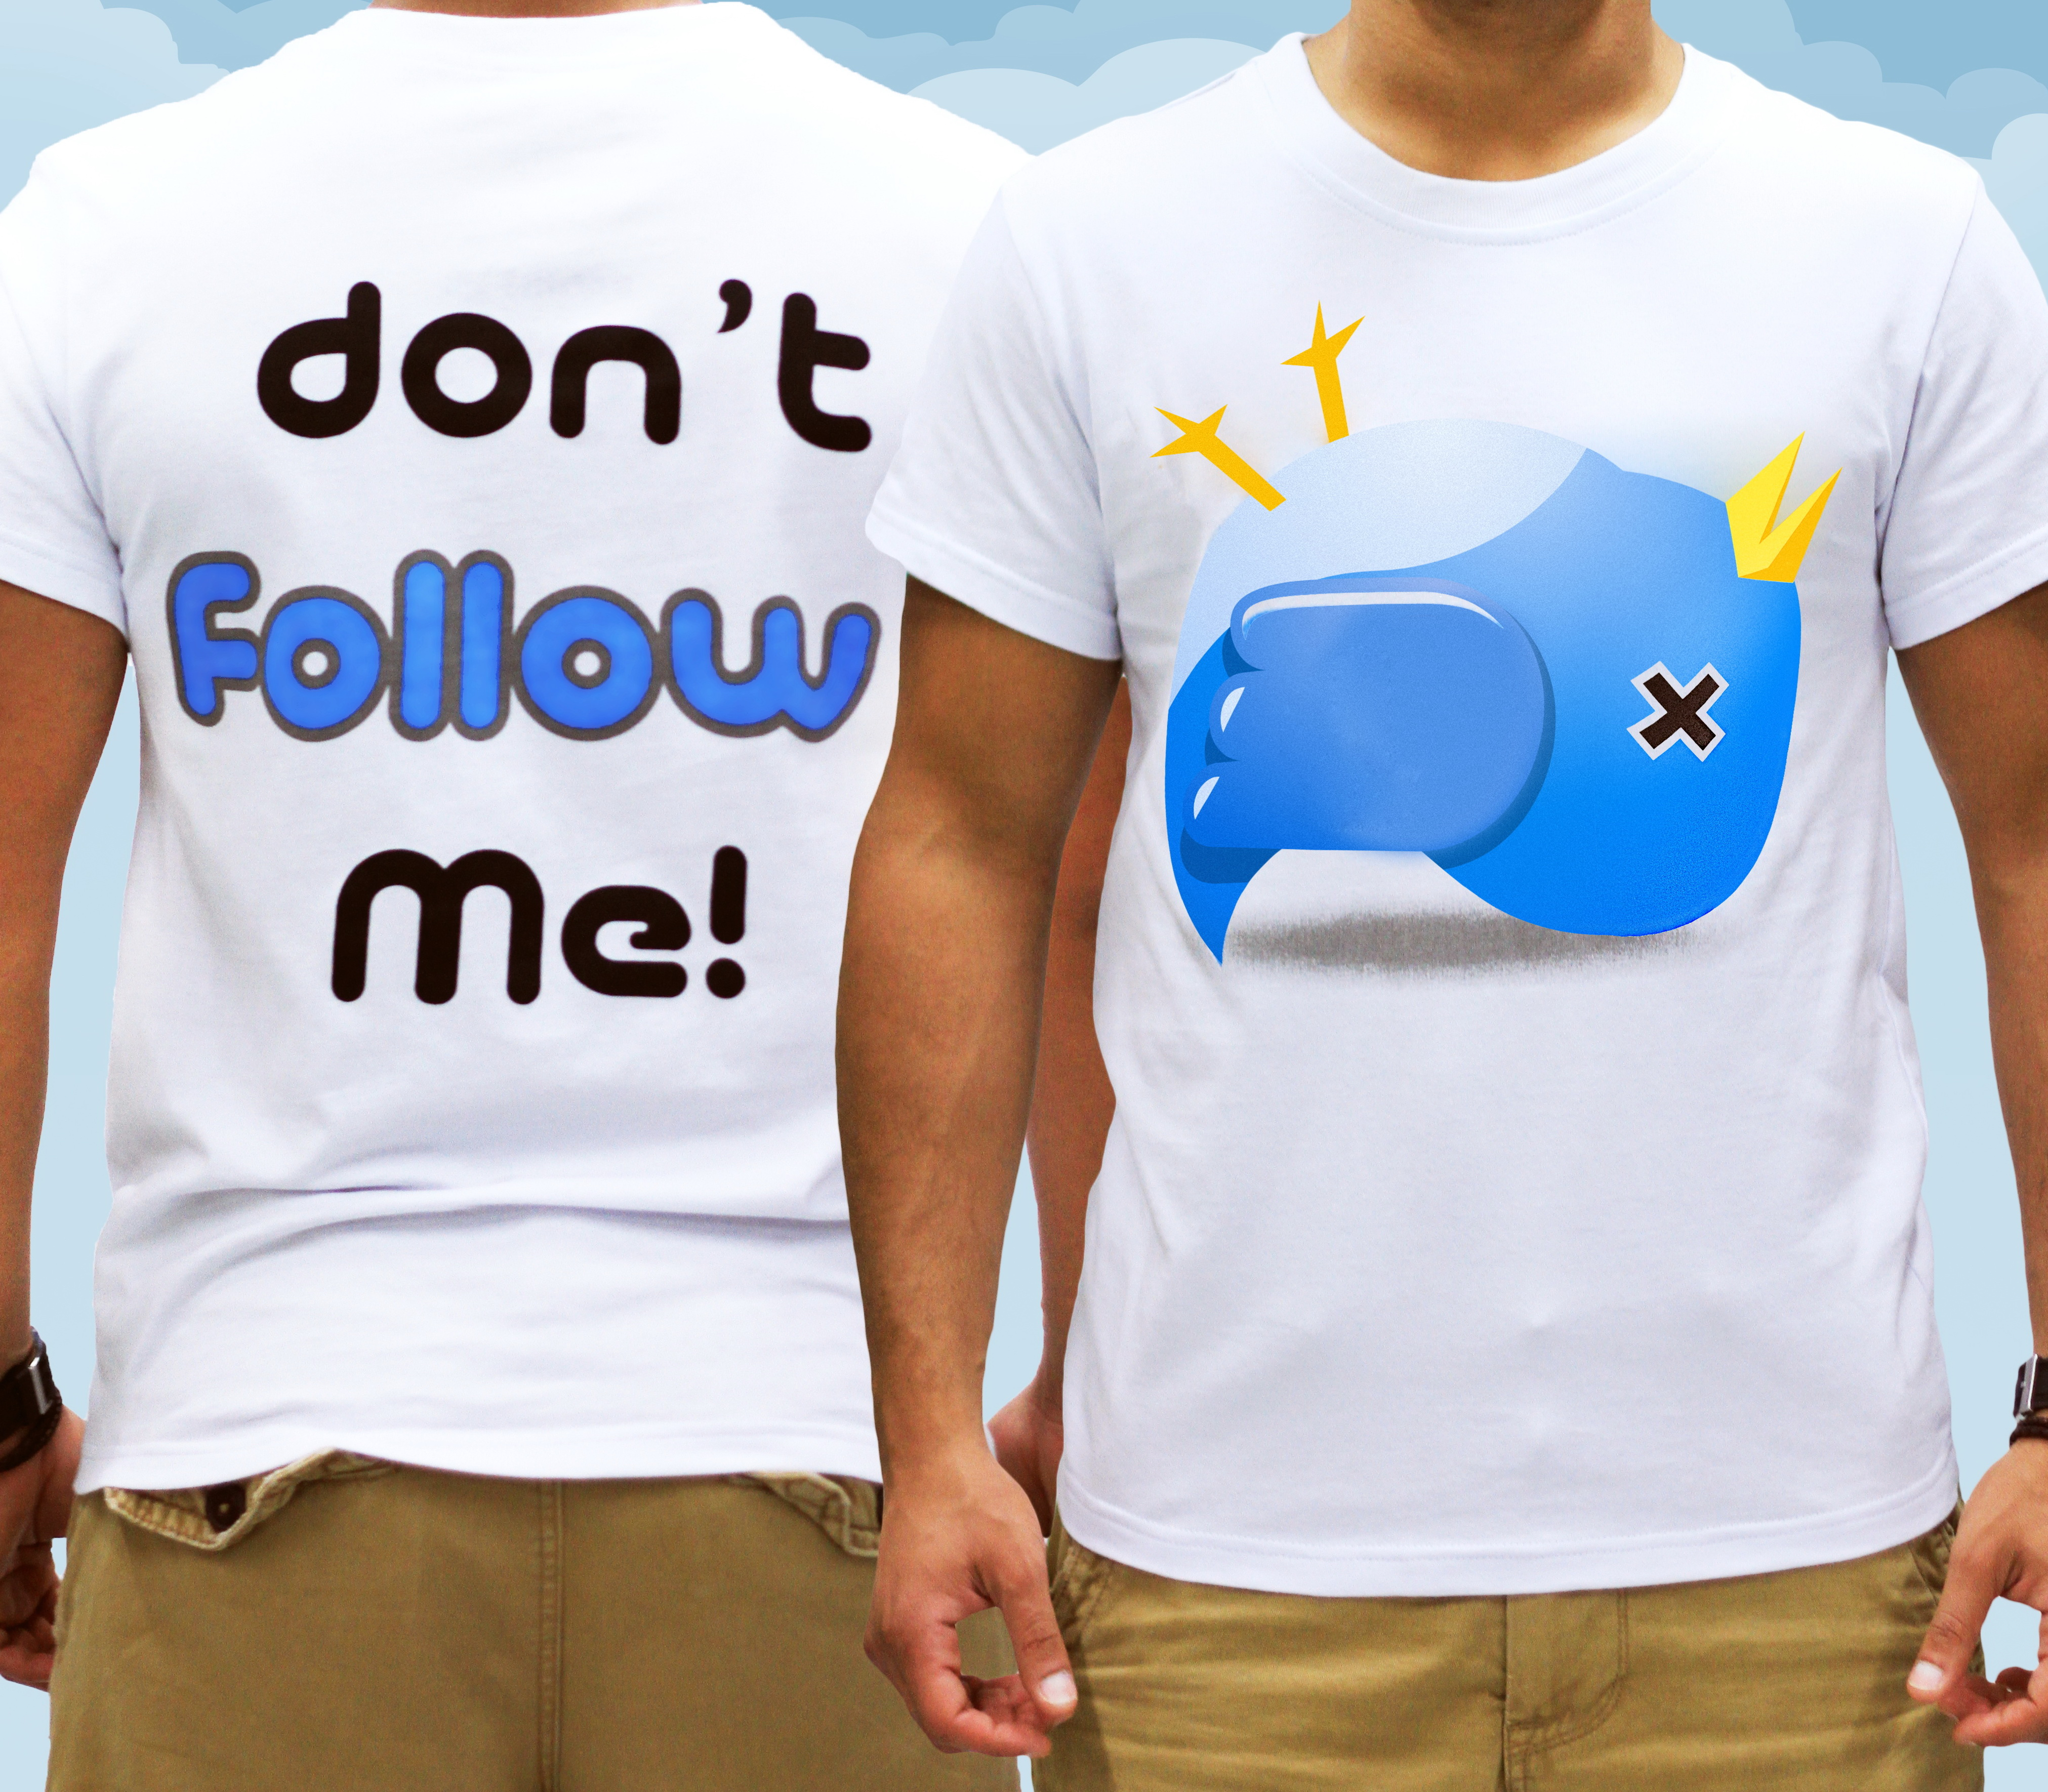 T shirt design qld - I Can T Say I M A Huge Fan Of Twitter And Seeing This T Shirt Made Me Laugh